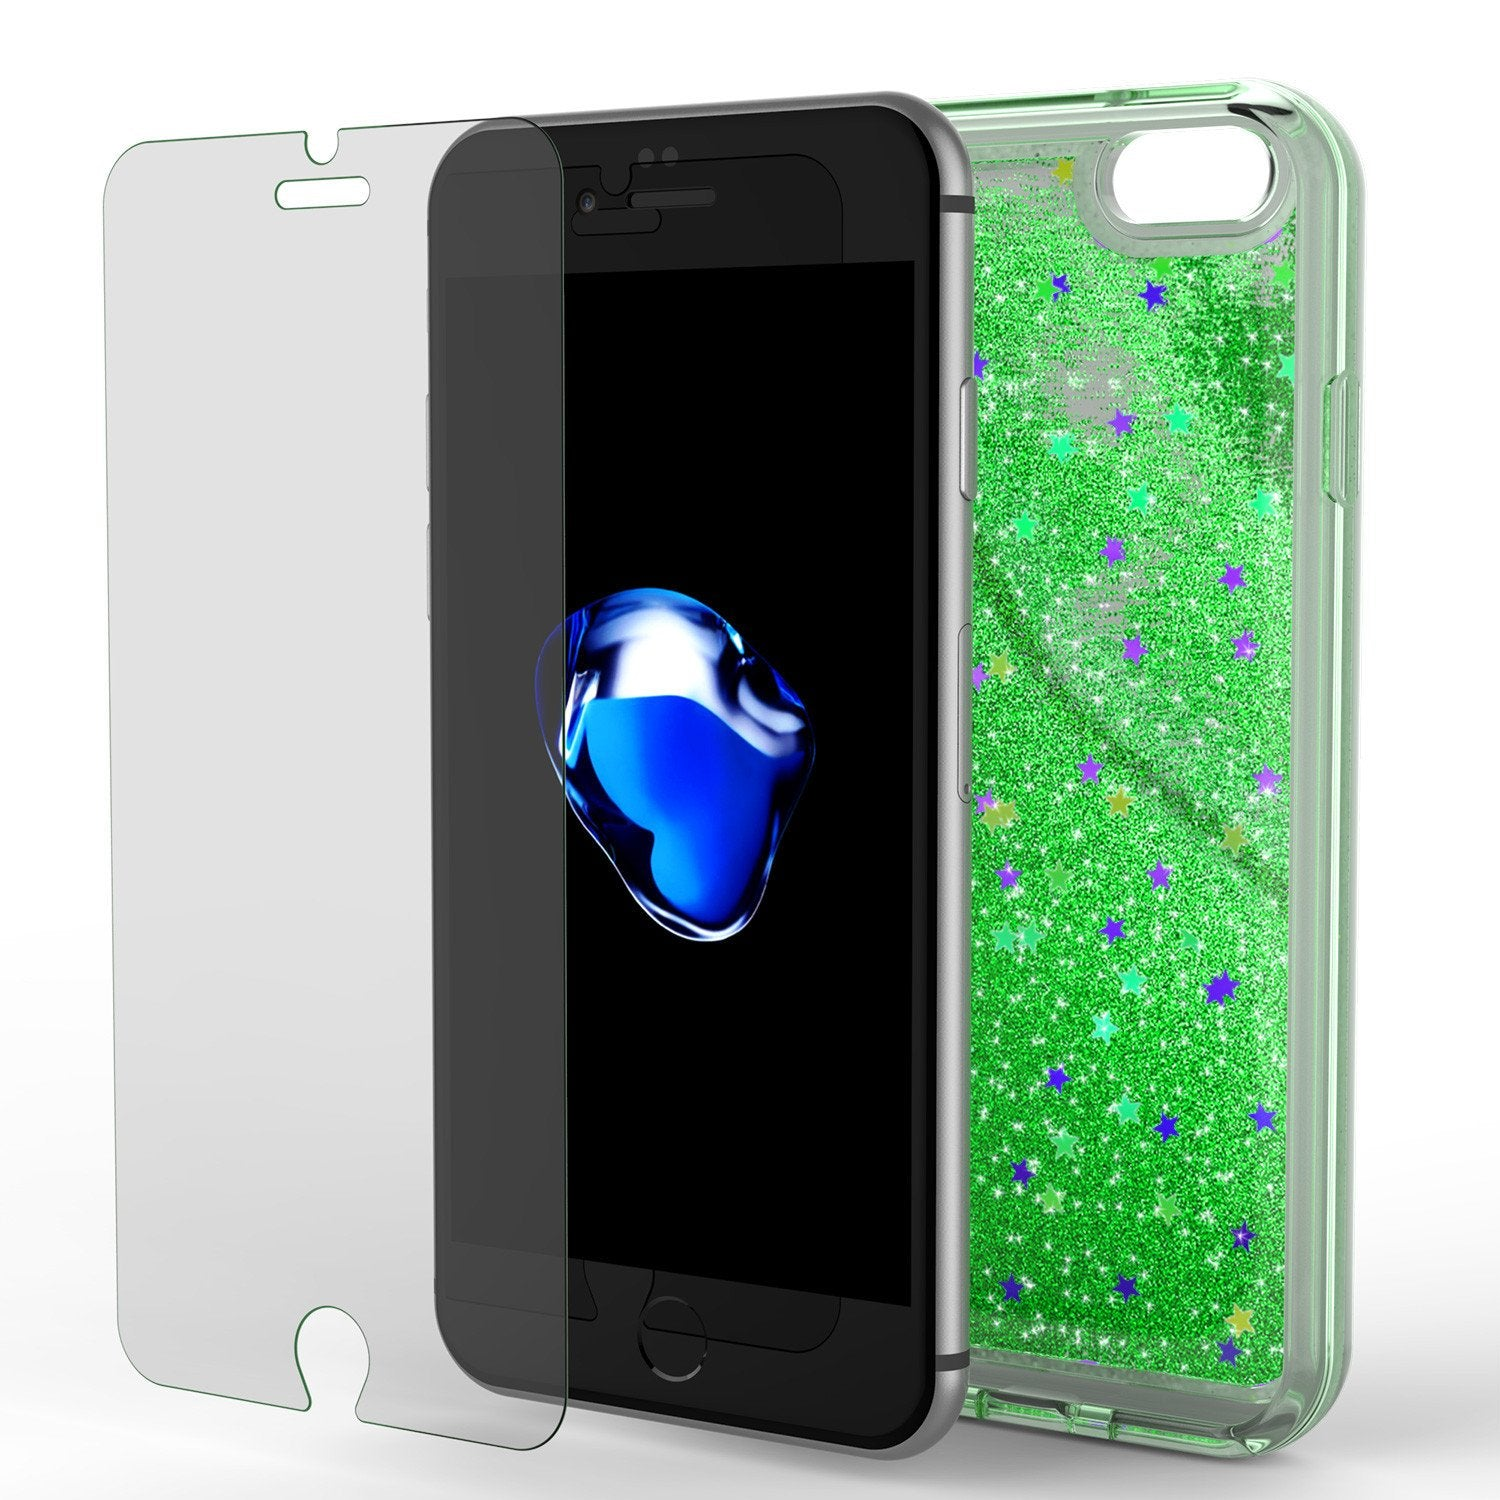 iPhone 7 Case, Punkcase [Liquid Green Series] Protective Dual Layer Floating Glitter Cover with lots of Bling & Sparkle + 0.3mm Tempered Glass Screen Protector for Apple iPhone 7s